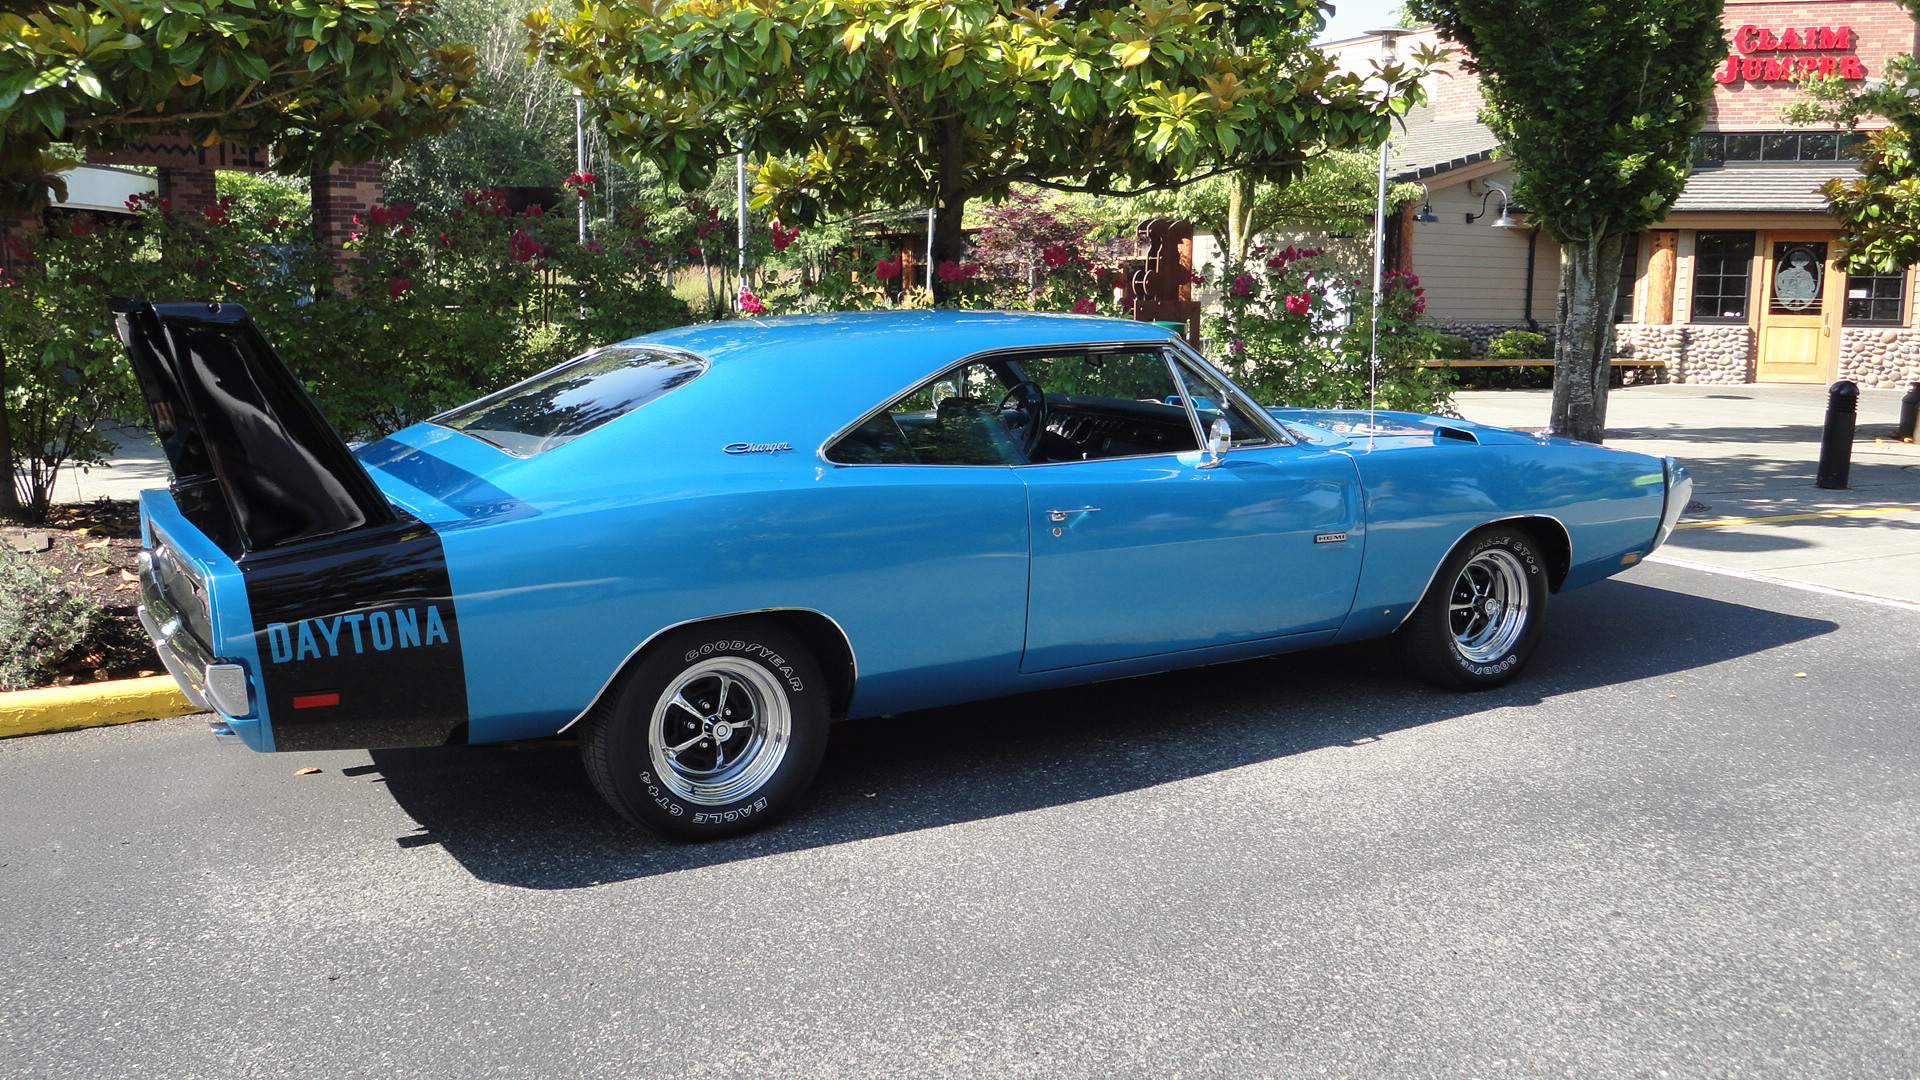 dodge challenger daytona 1969 - car insurance info